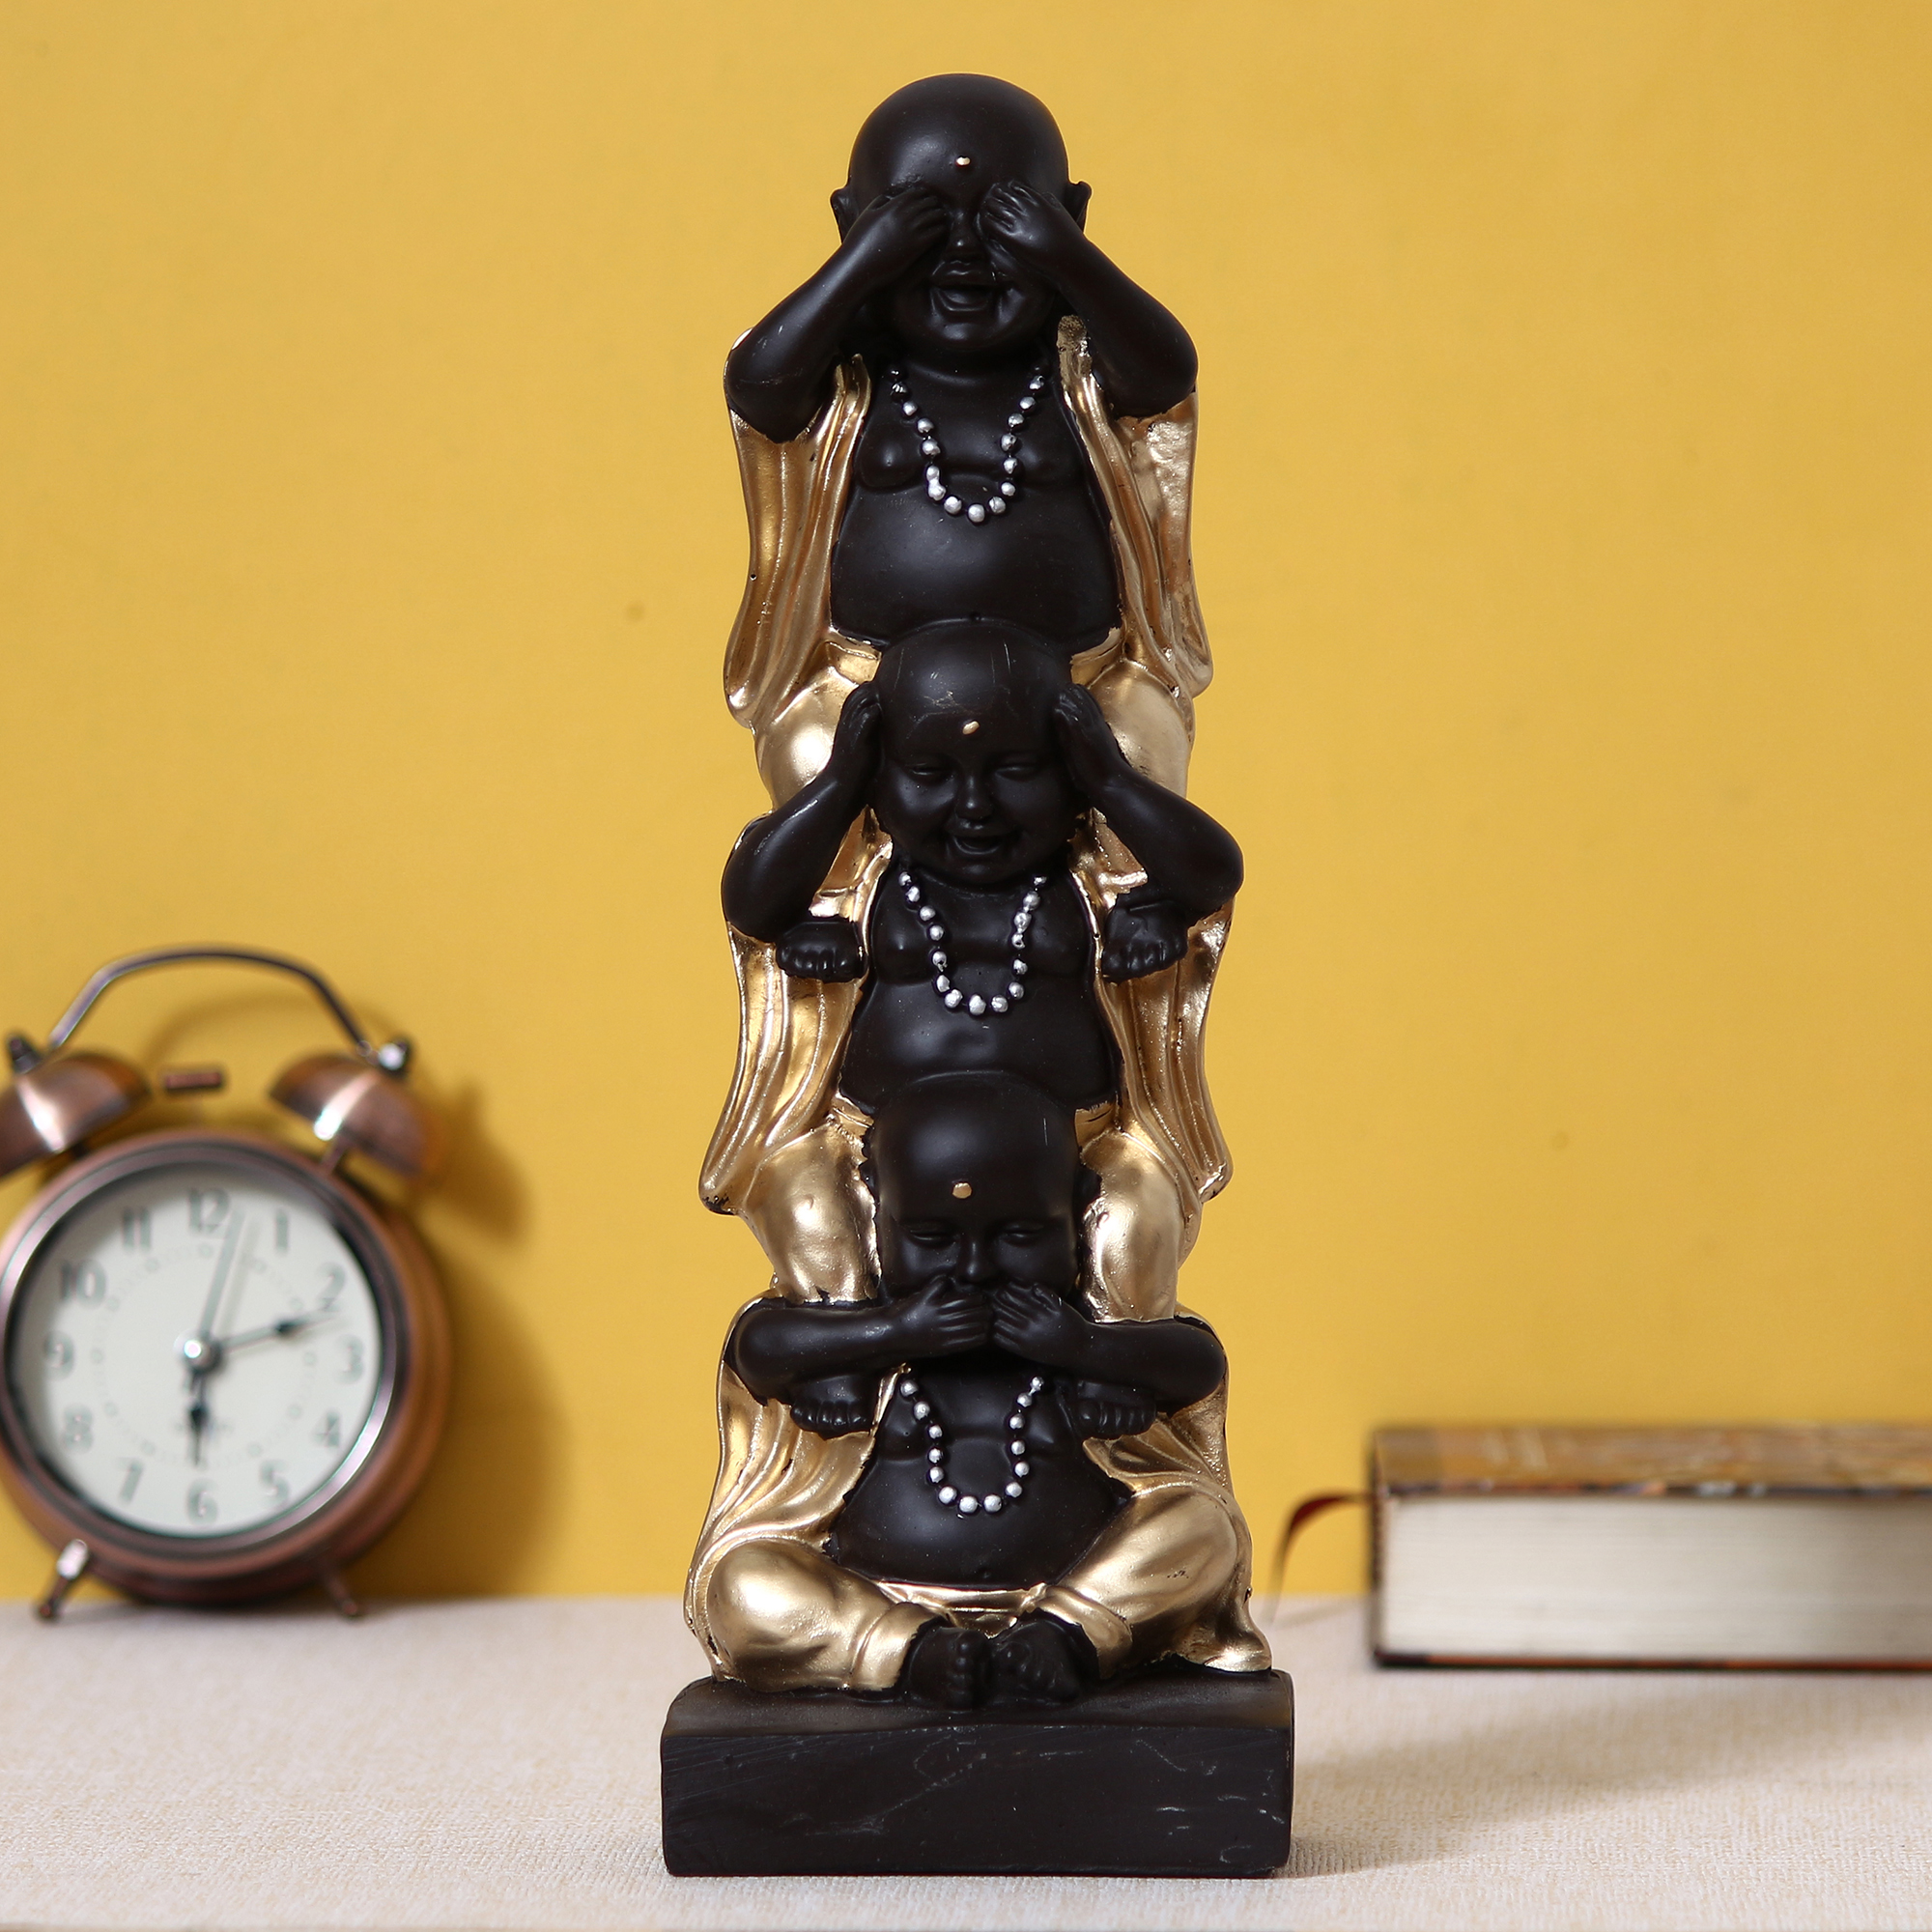 Set of 3 Golden Laughing Buddha Standing on each other Decorative Showpiece Indian Home Decor